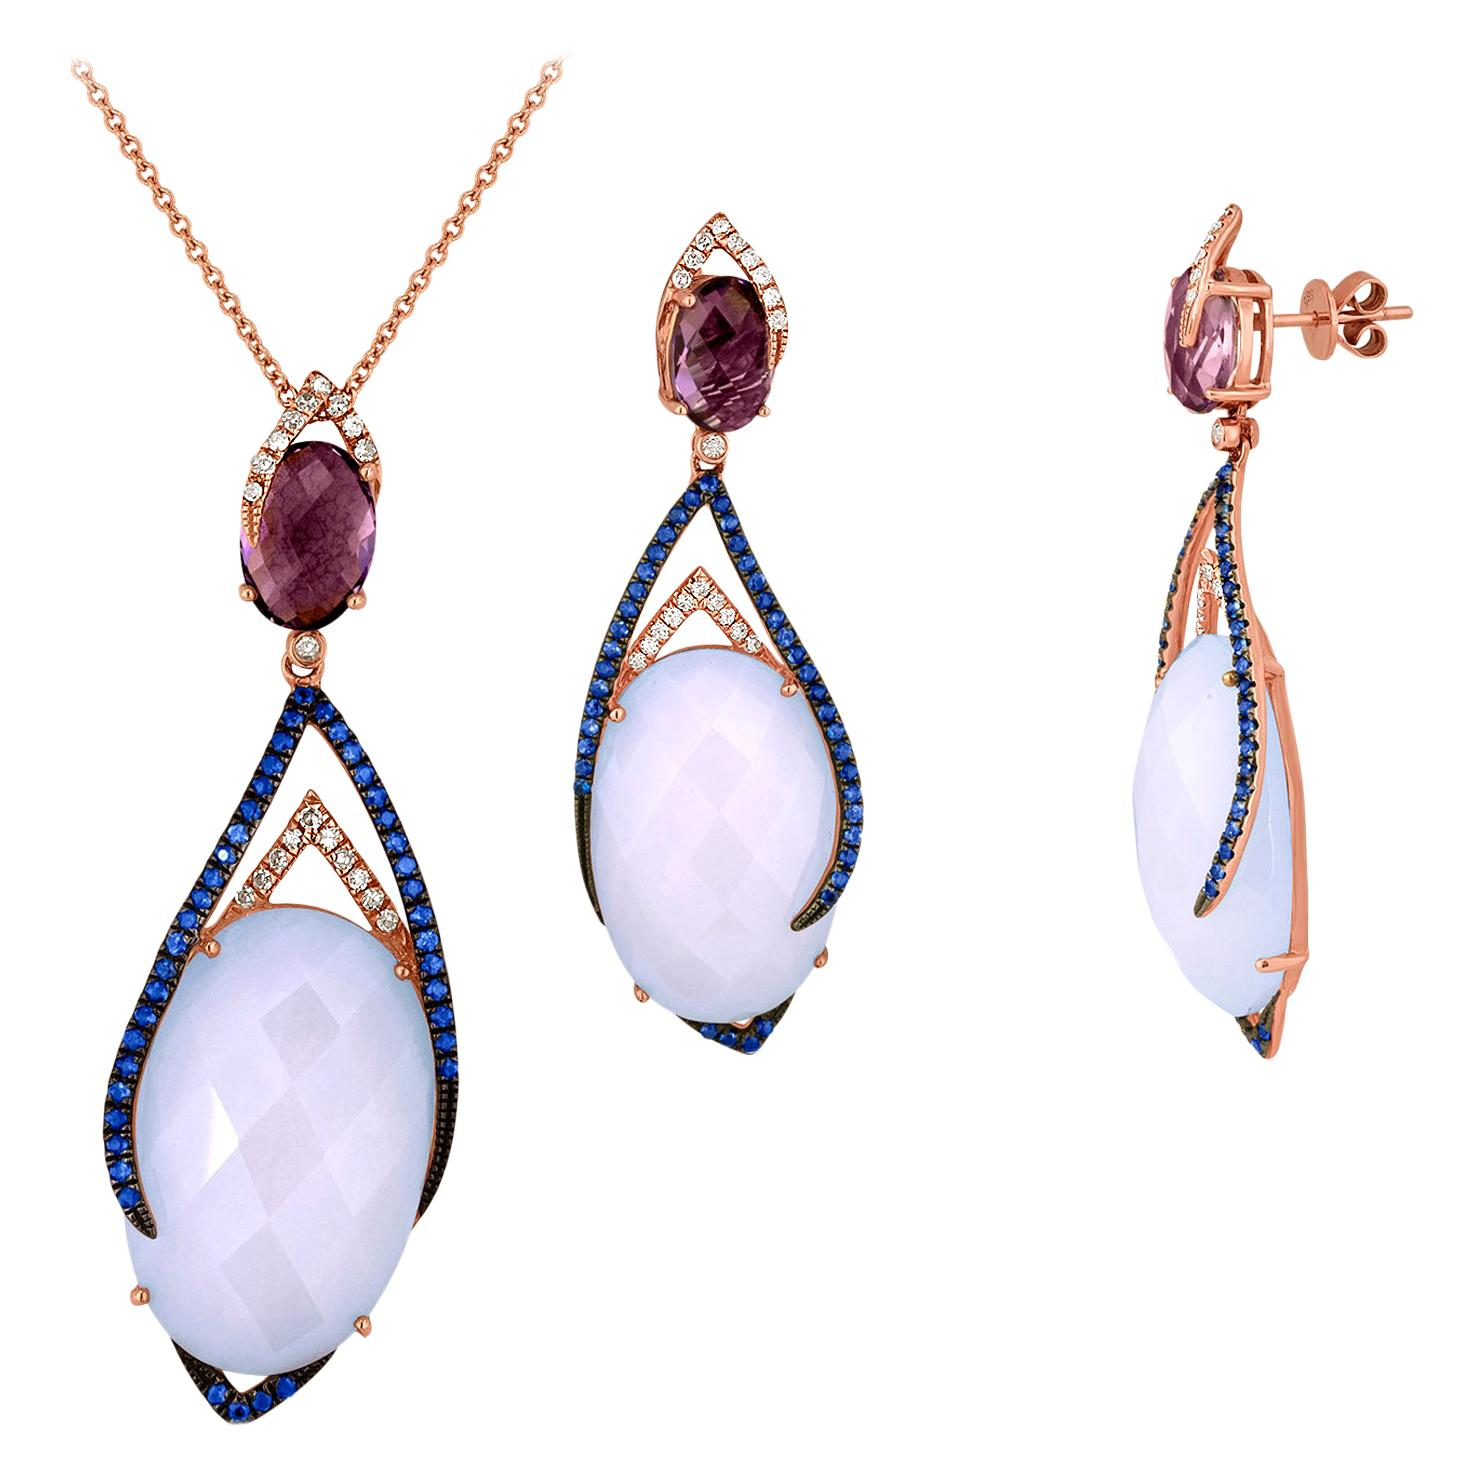 35.45 Carat Chalcedony Sapphire and Amethyst Earrings and Necklace Set